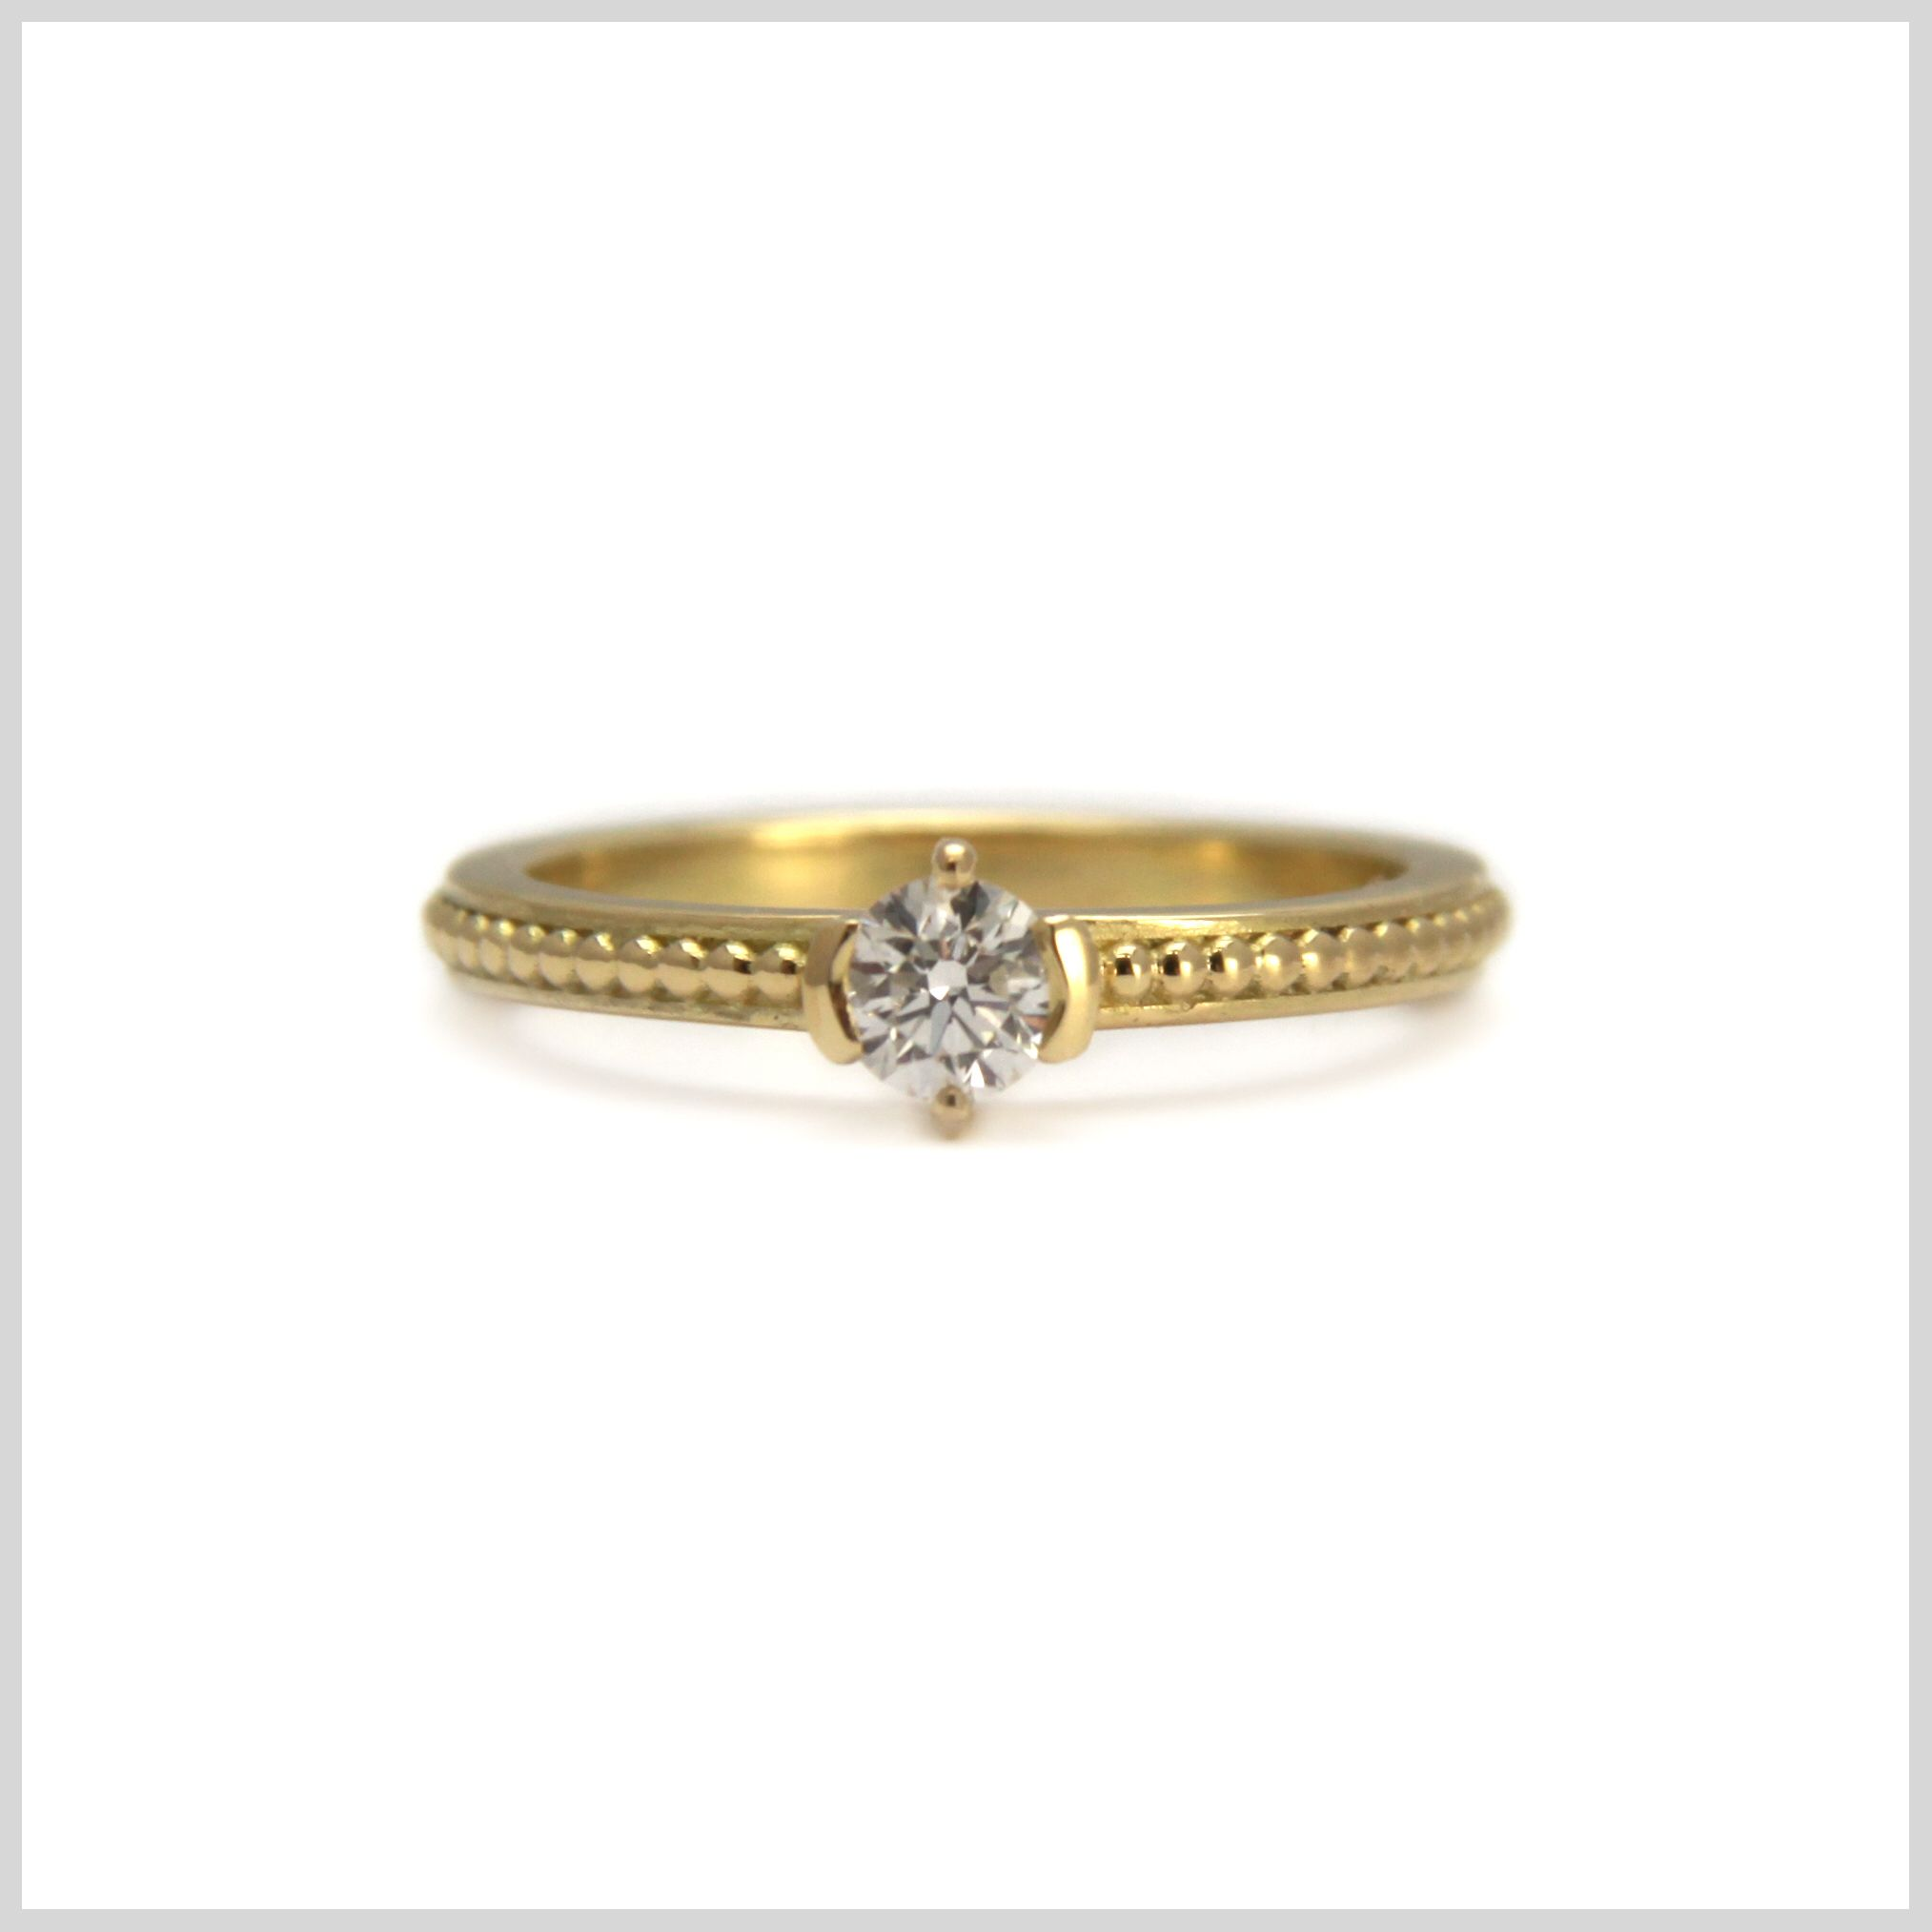 Diamond Ring Handmade Bespoke Gold Platinum Palladium Contemporary